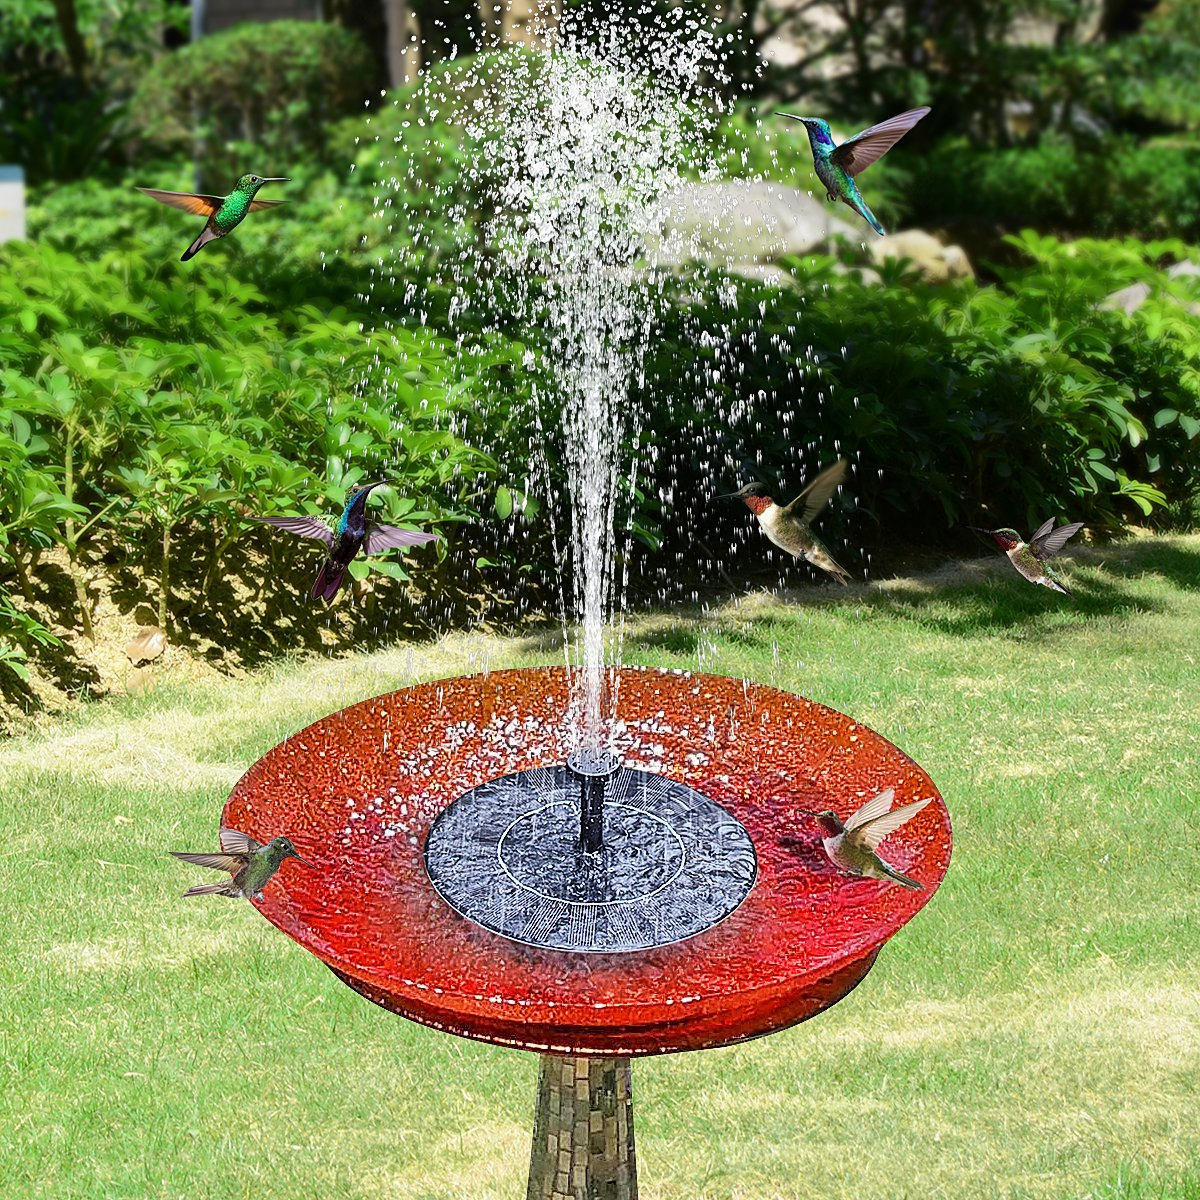 Tranmix Solar Fountain Pump for Bird Bath, 2018 Upgraded Floating Fountains Solar Panel Kit Water Pump for Ponds, Garden, Outdoor Décor by Tranmix (Image #3)